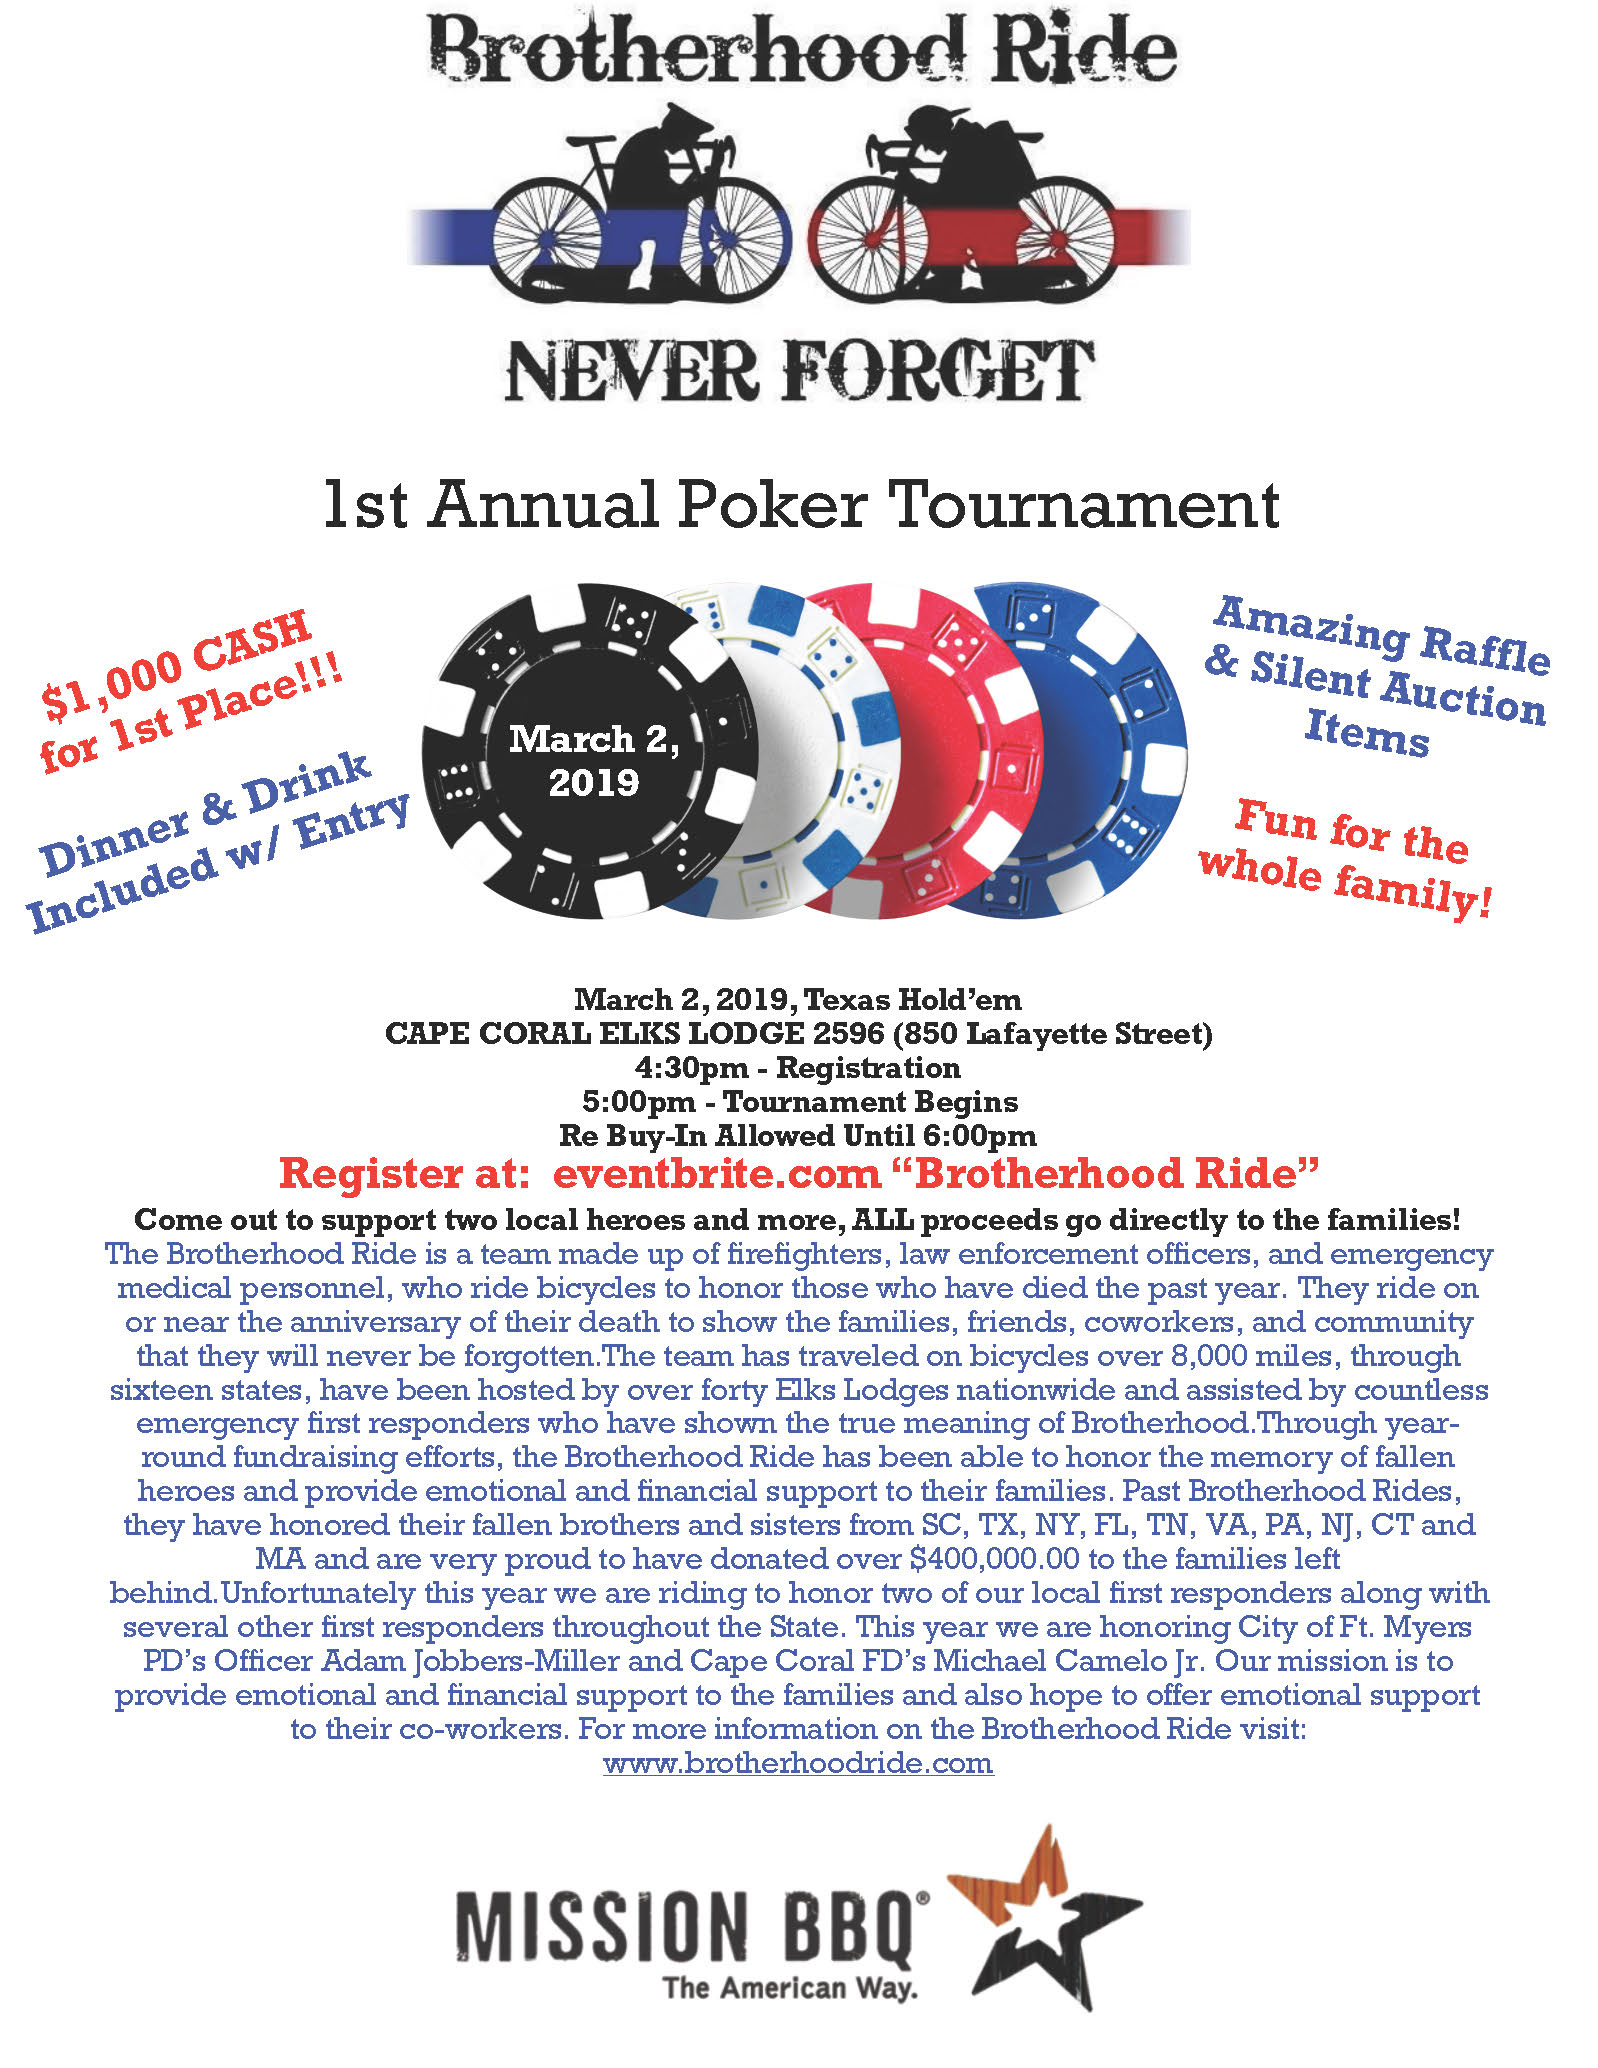 1st Annual Brotherhood Ride Poker Tournament San Carlos Park Fire Protection And Rescue Service District